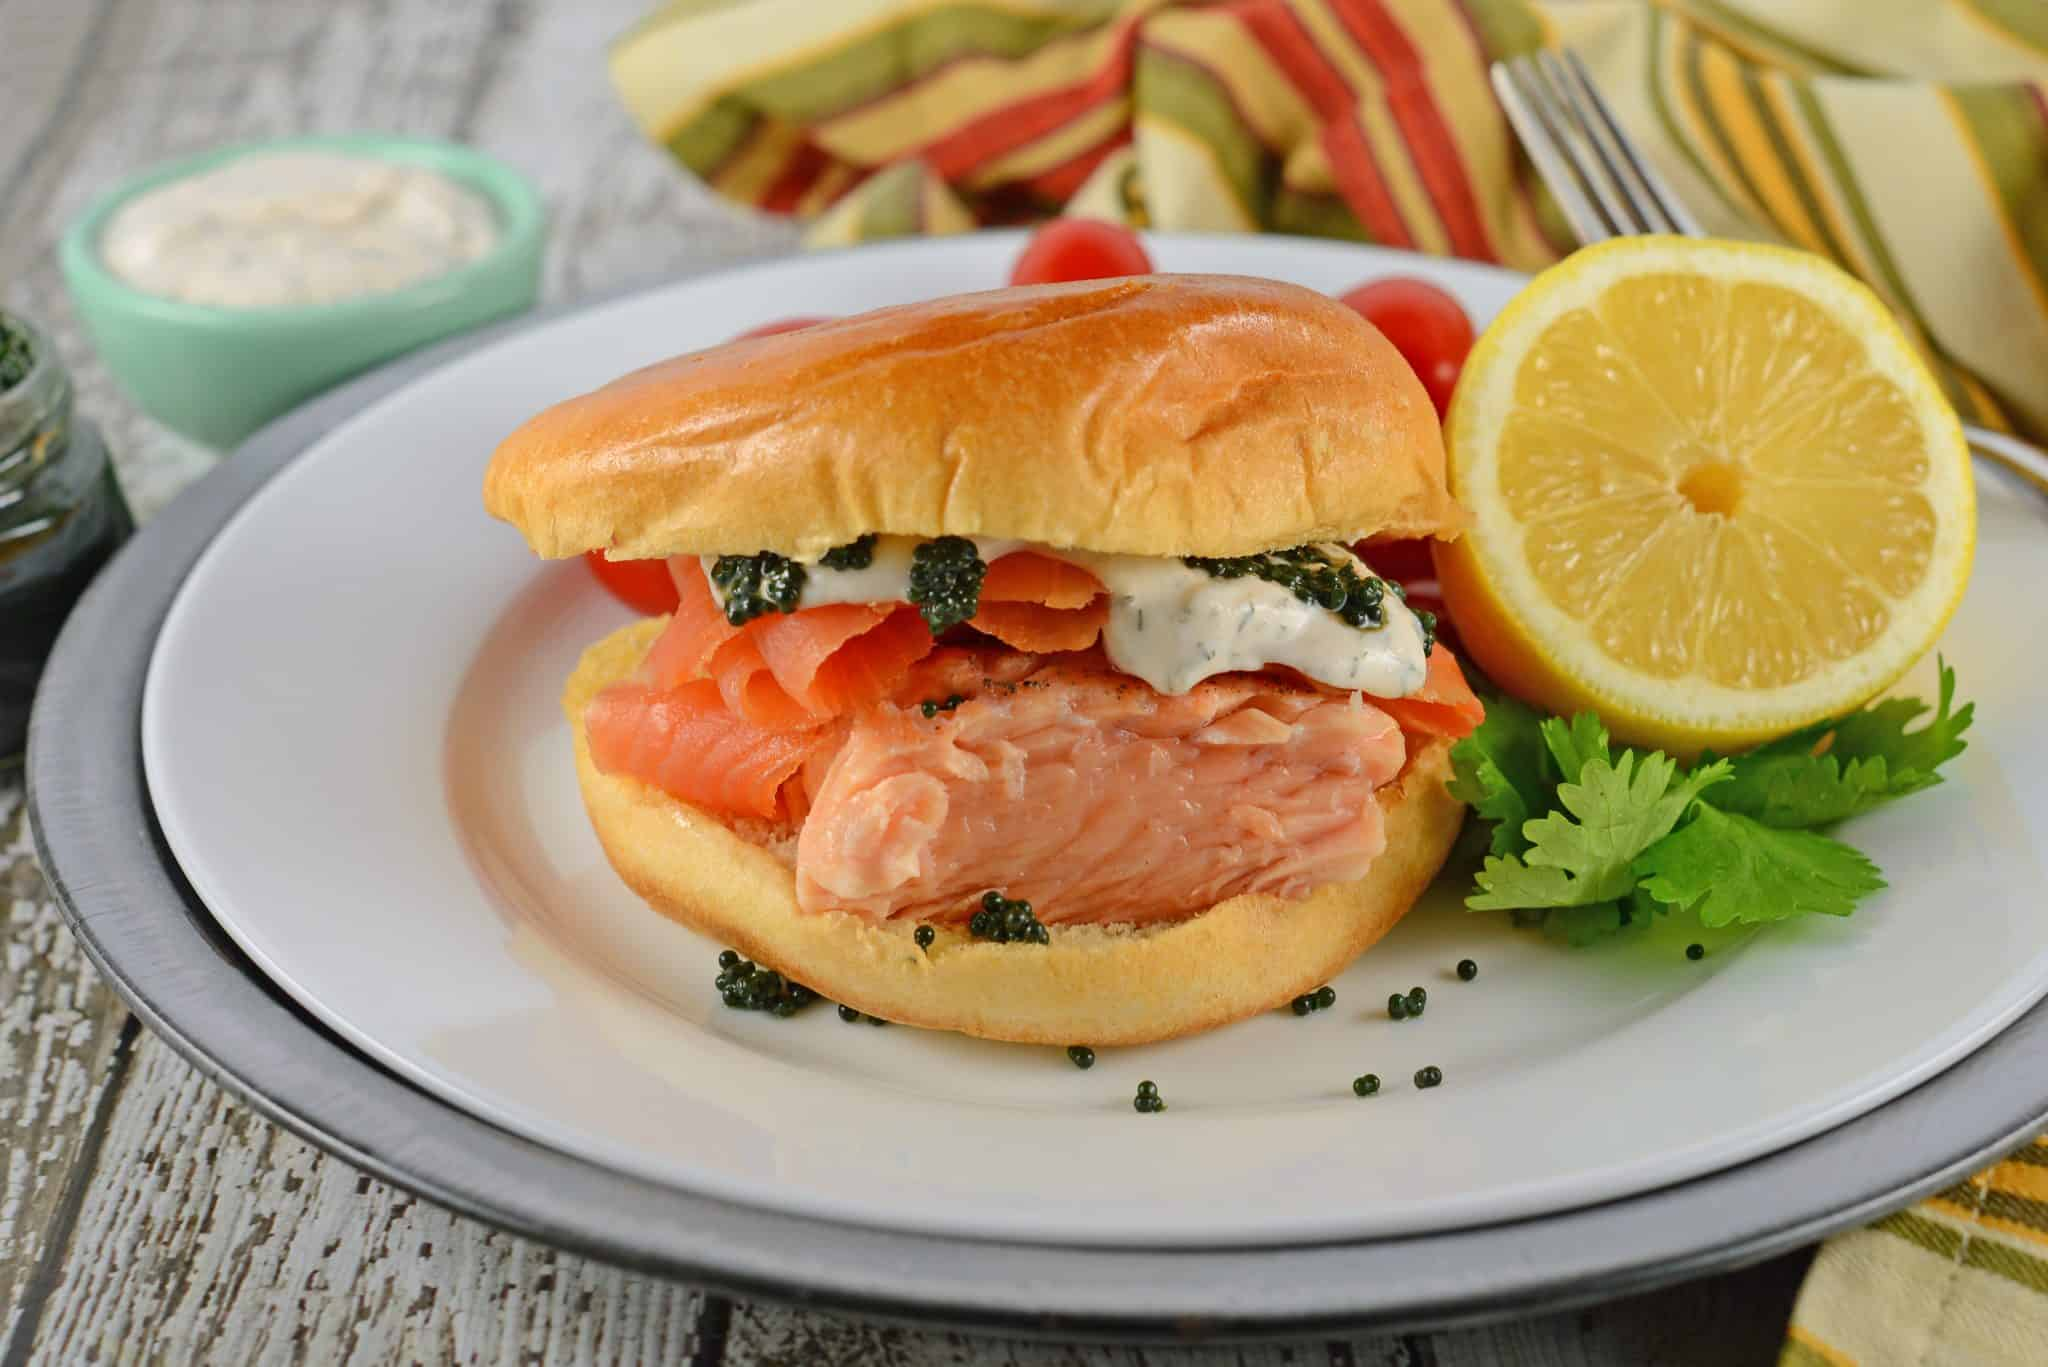 The Ultimate Salmon Sandwich is the best salmon sandwich because it uses two types of salmon with dilled sour cream and caviar on a buttery brioche roll.